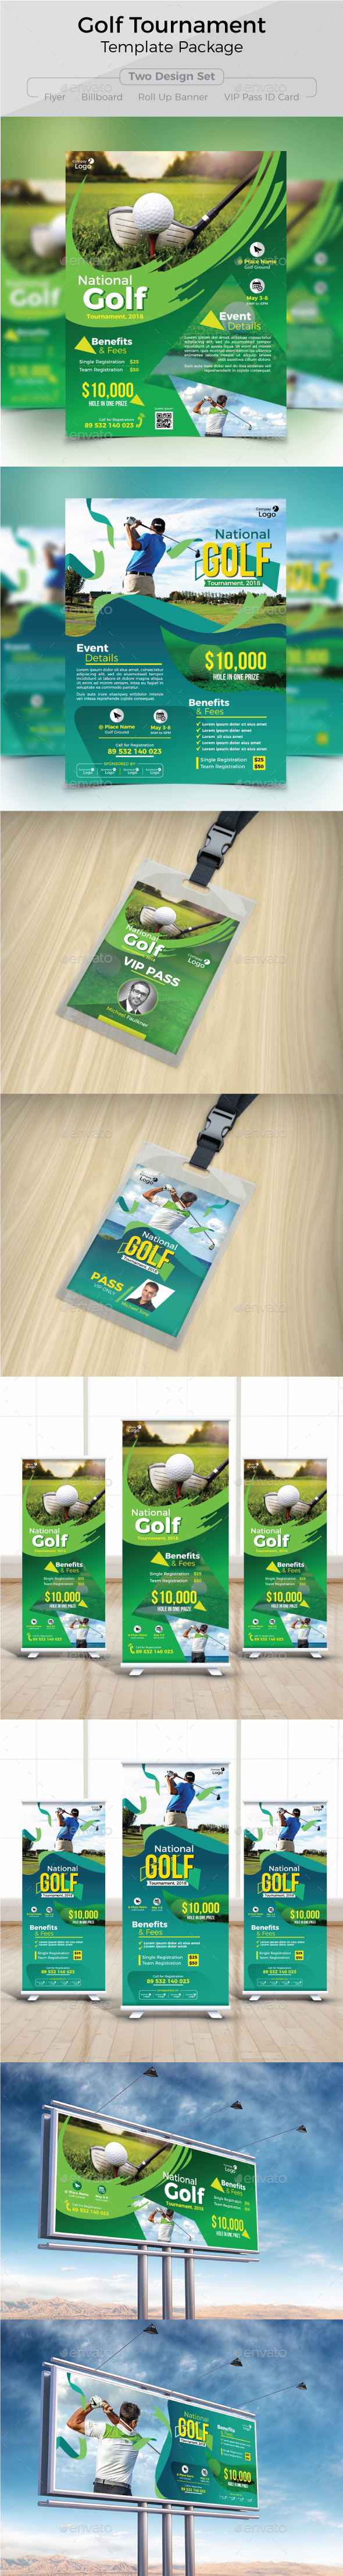 GraphicRiver Golf Tournament Template Package 20875256